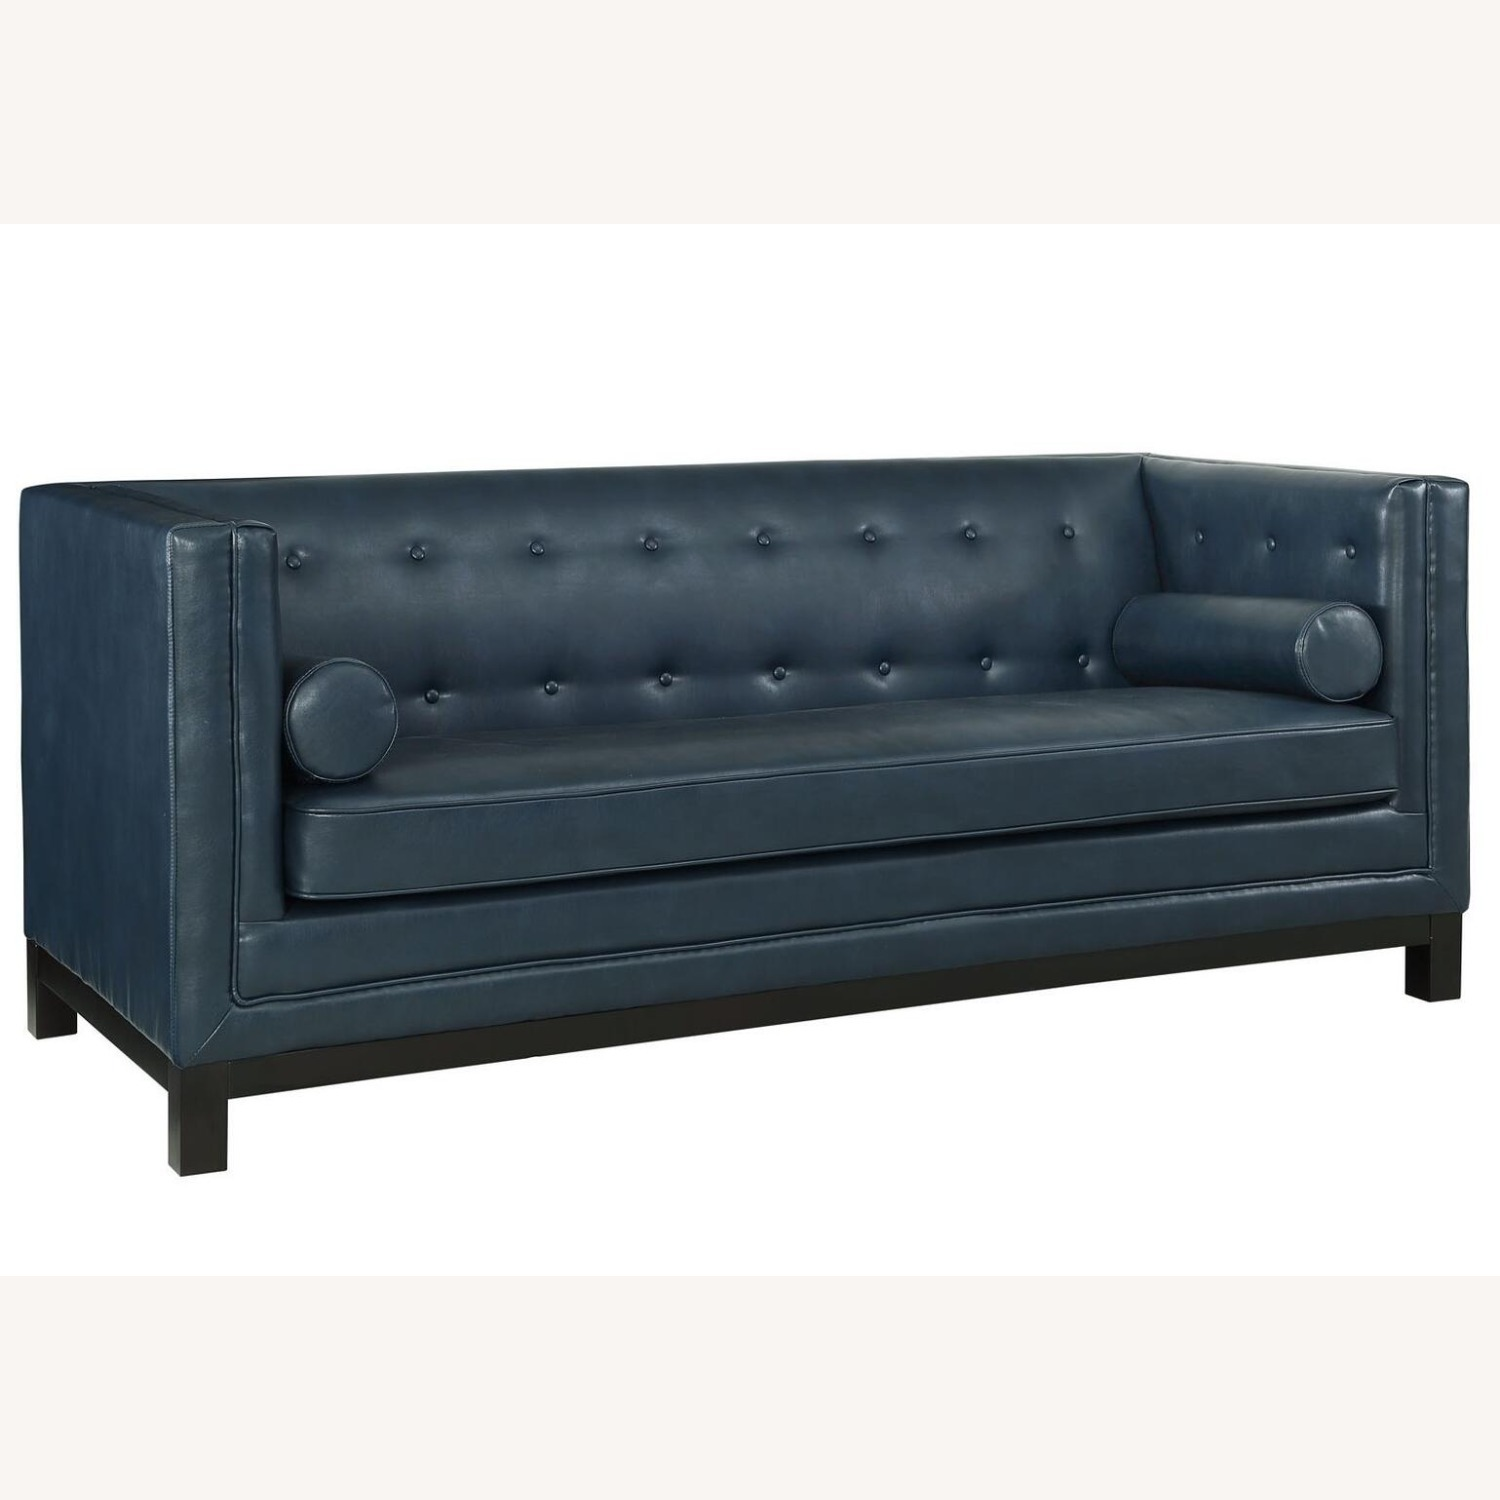 Mid-Century Style Sofa In Blue Bonded Leather - image-0